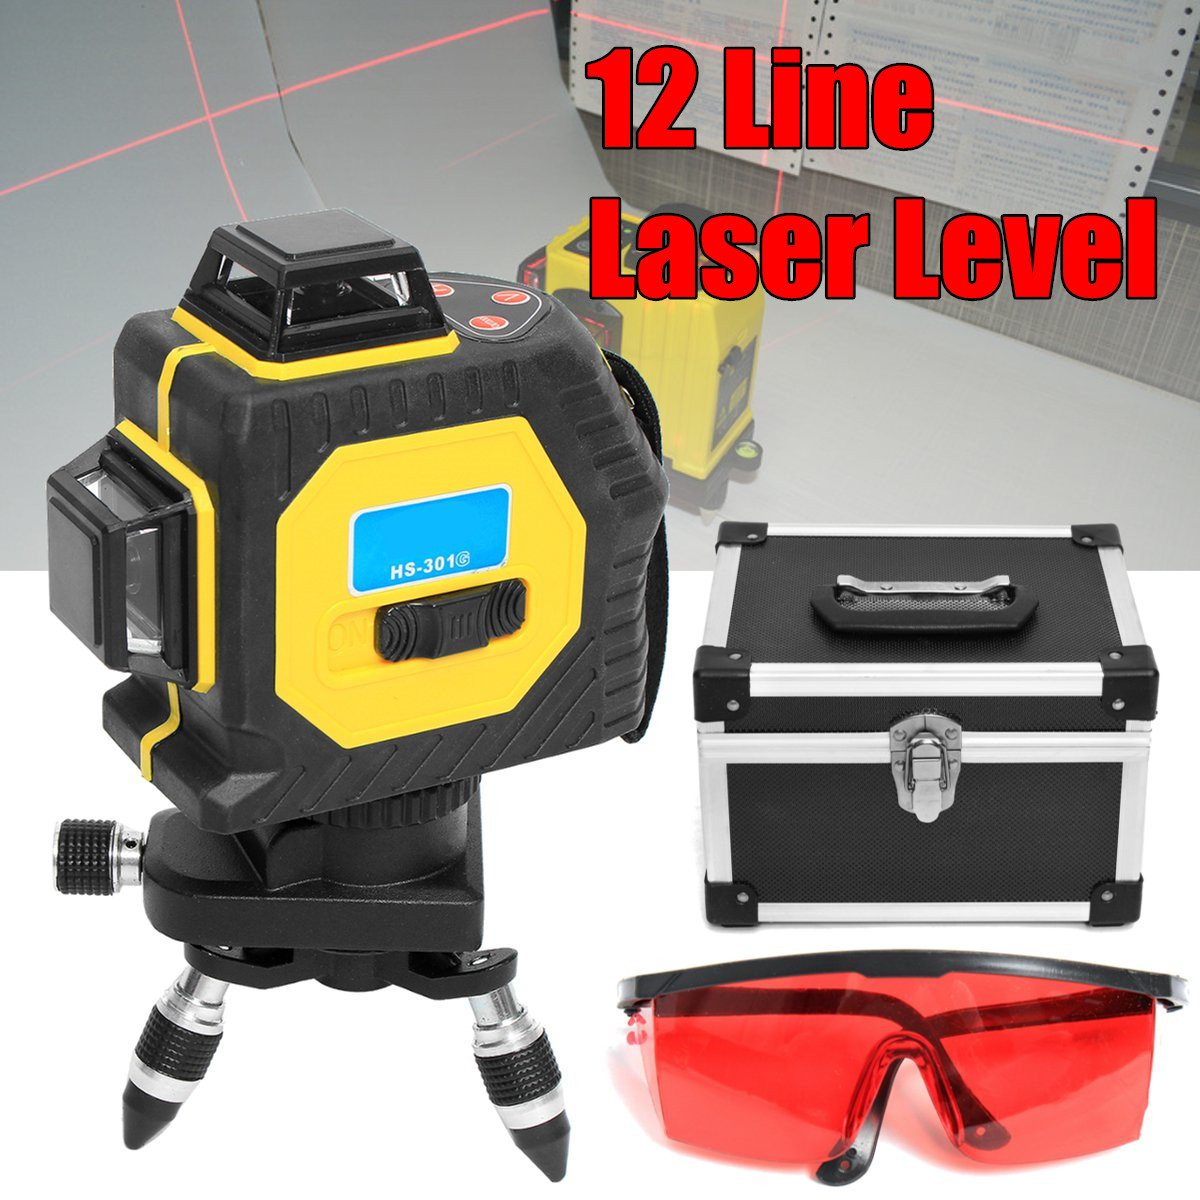 3D Laser Level 12 Lines Red 360 Degree Outdoor Infrared Laser Levels Projection Instrument Self Leveling Tripod Rotary Cross Kit xeast xe 17a new 3d red laser level 8 lines tilt mode self leveling meter 360 degree rotary cross red beam